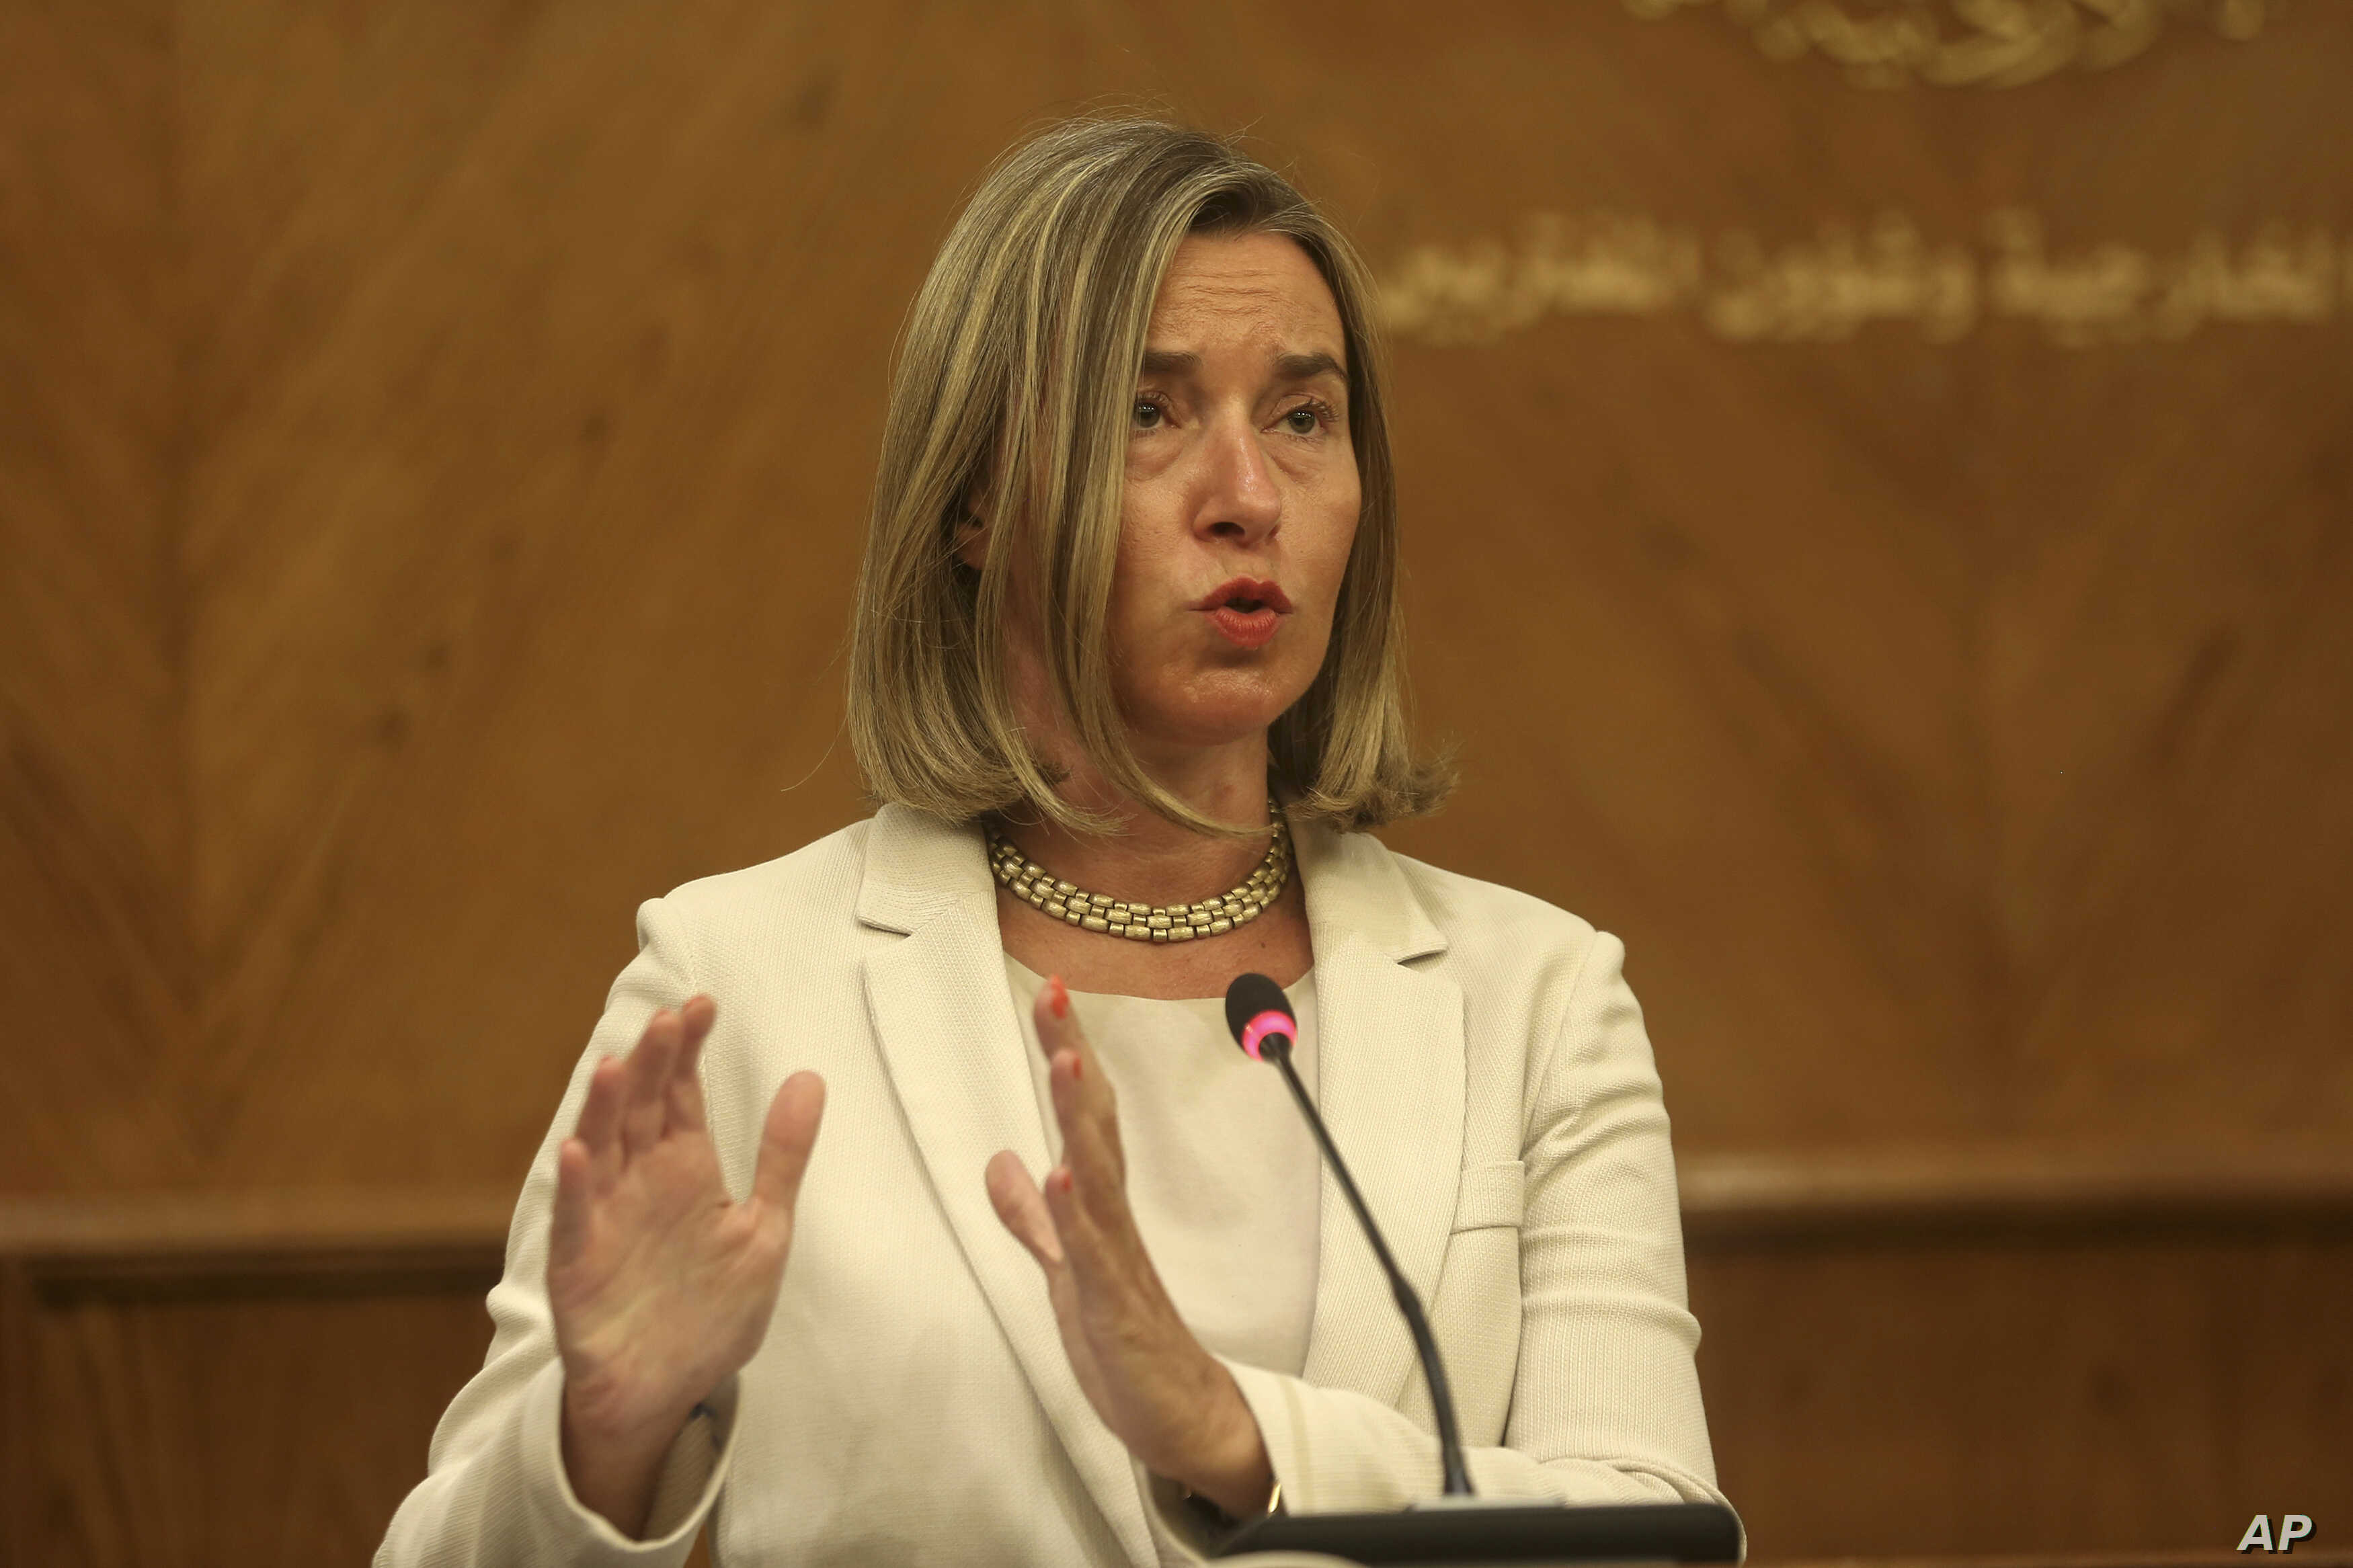 EU High Representative for Foreign Affairs and Security Policy Federica Mogherini gives a press conference in Amman, Jordan, June 10, 2018.